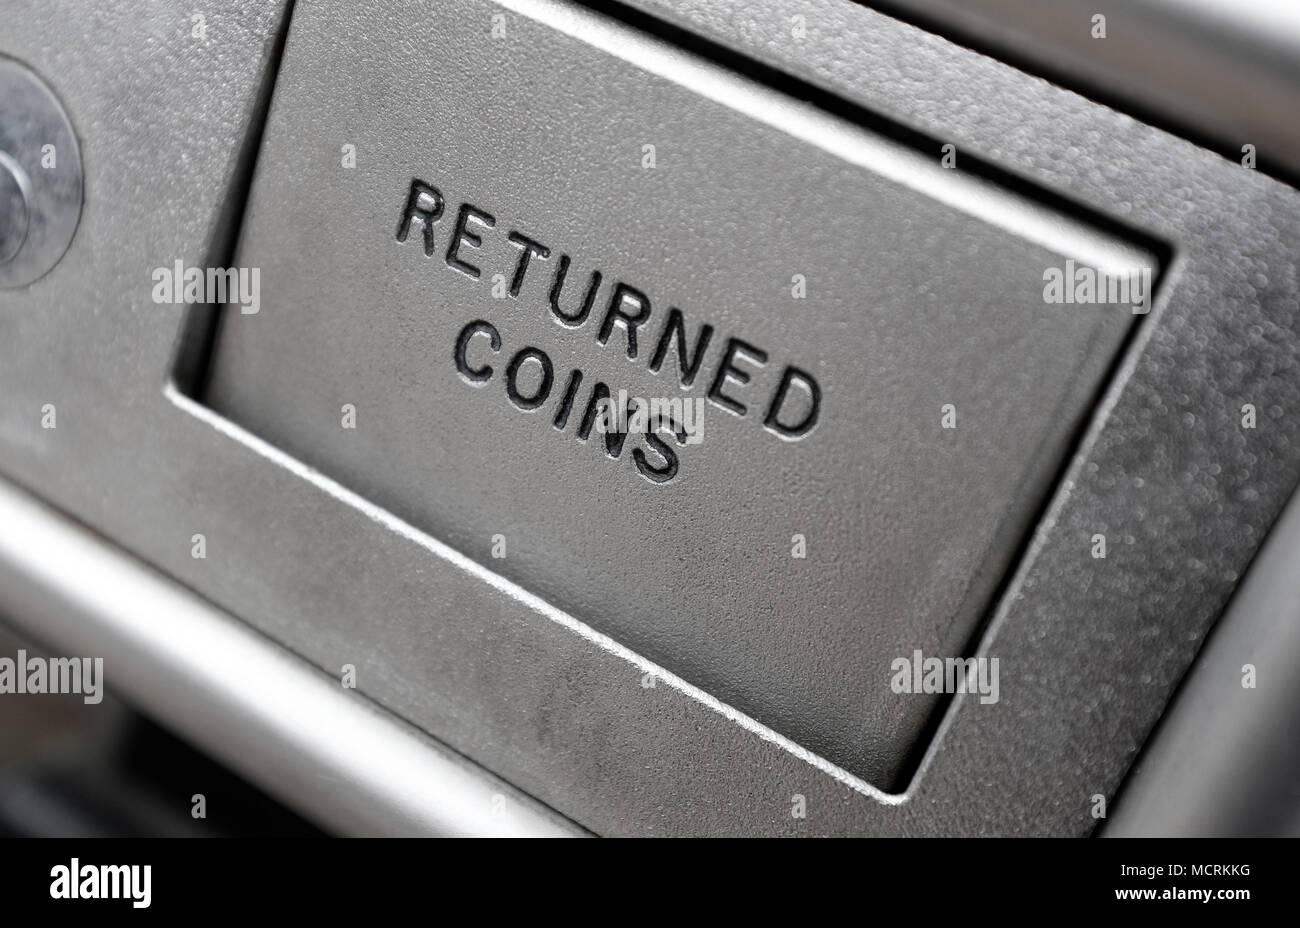 returned coins cover on metal payphone, norfolk, england - Stock Image